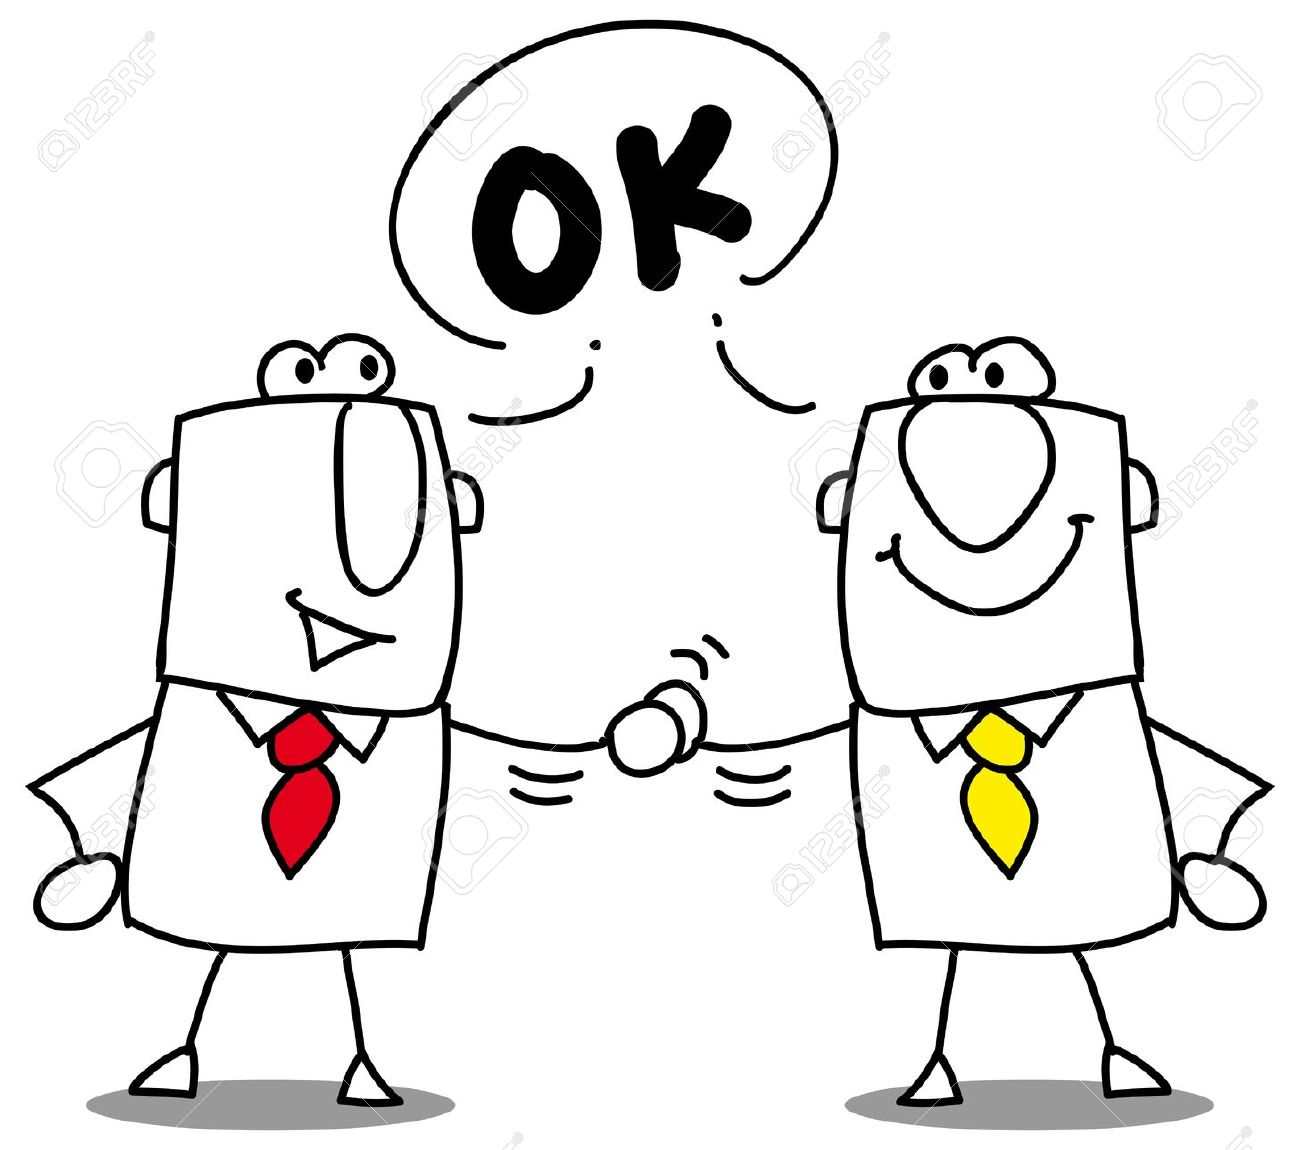 Agreement Clipart